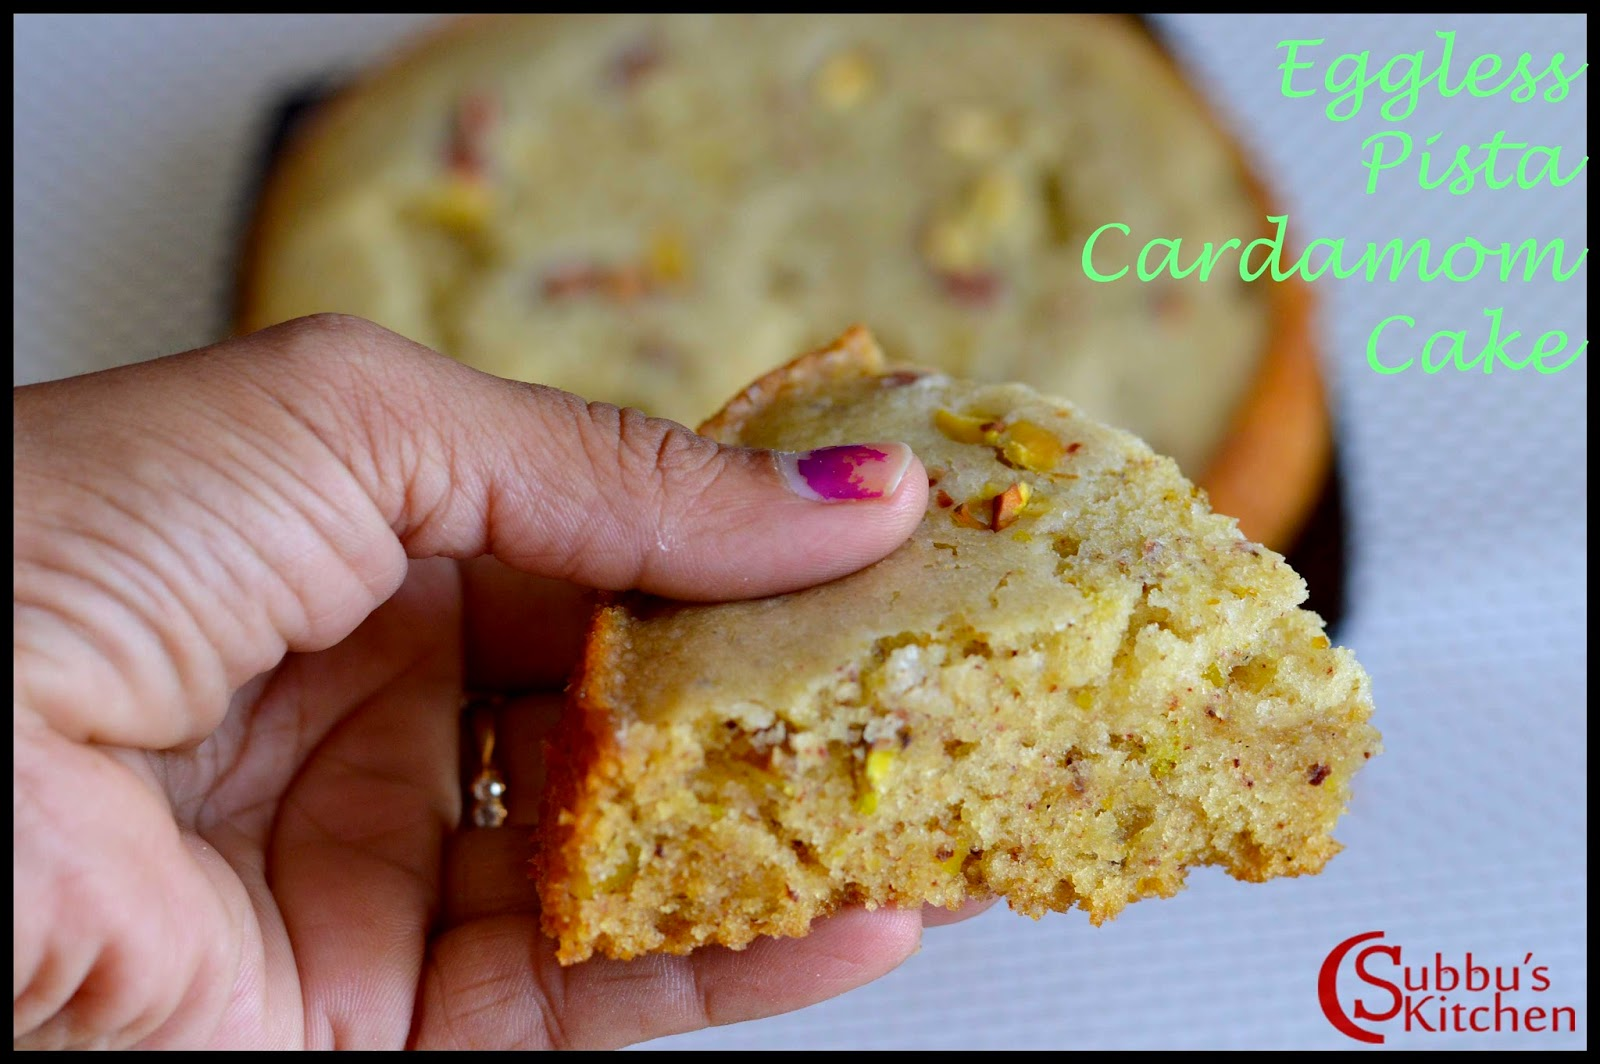 Eggless Pistachio Cardamom Cake Recipe (Pressure Cooker Method)